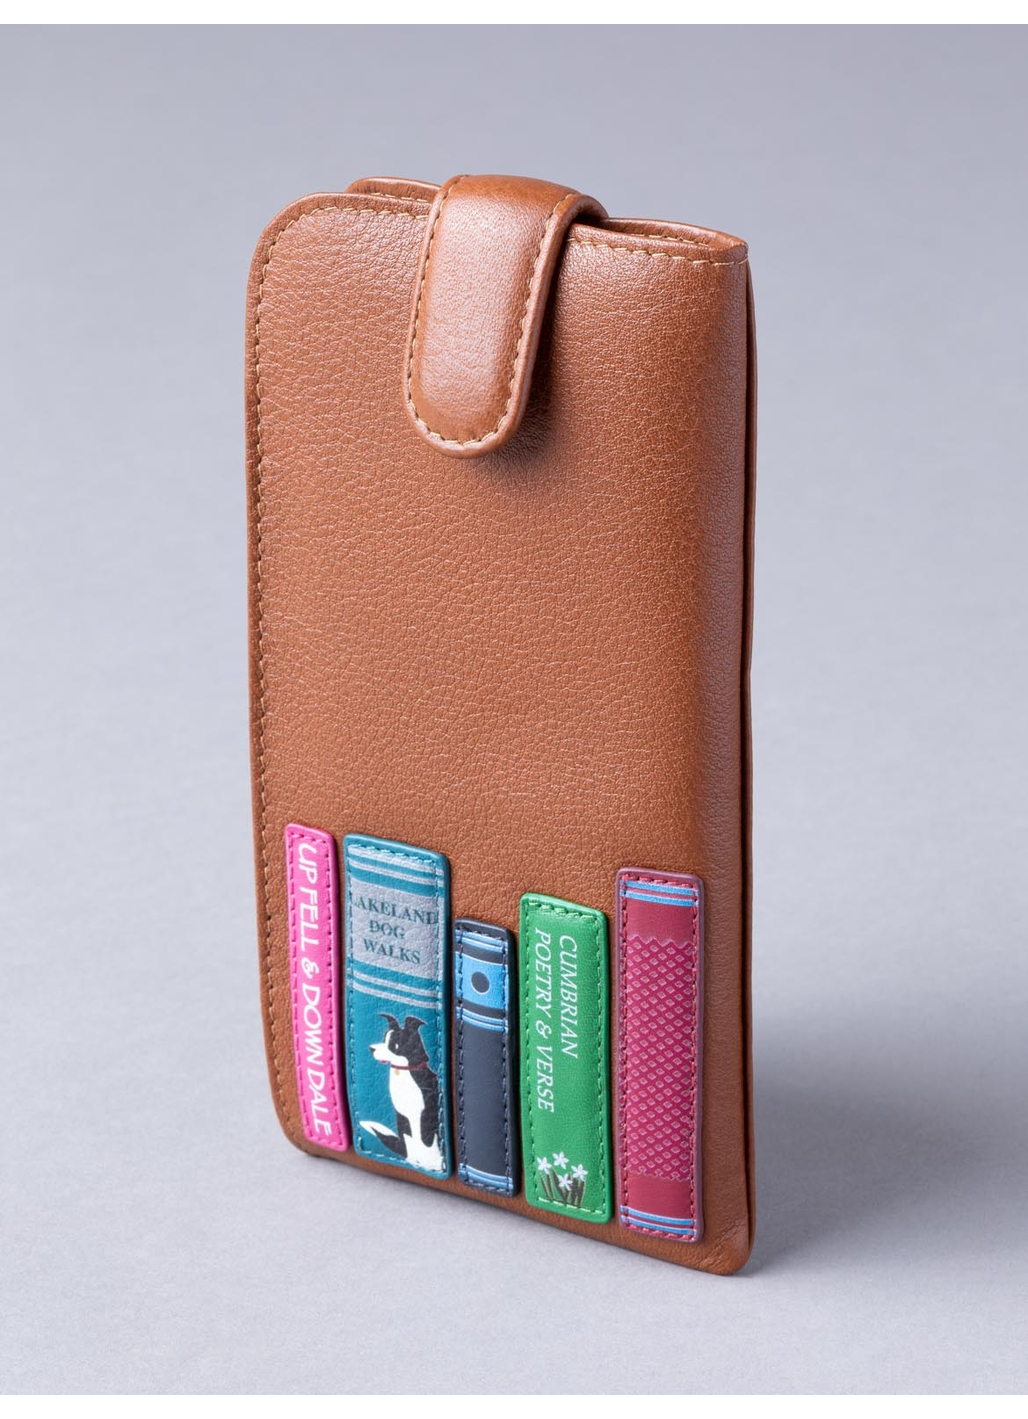 The Lakes Book Leather Glasses Case in Tan